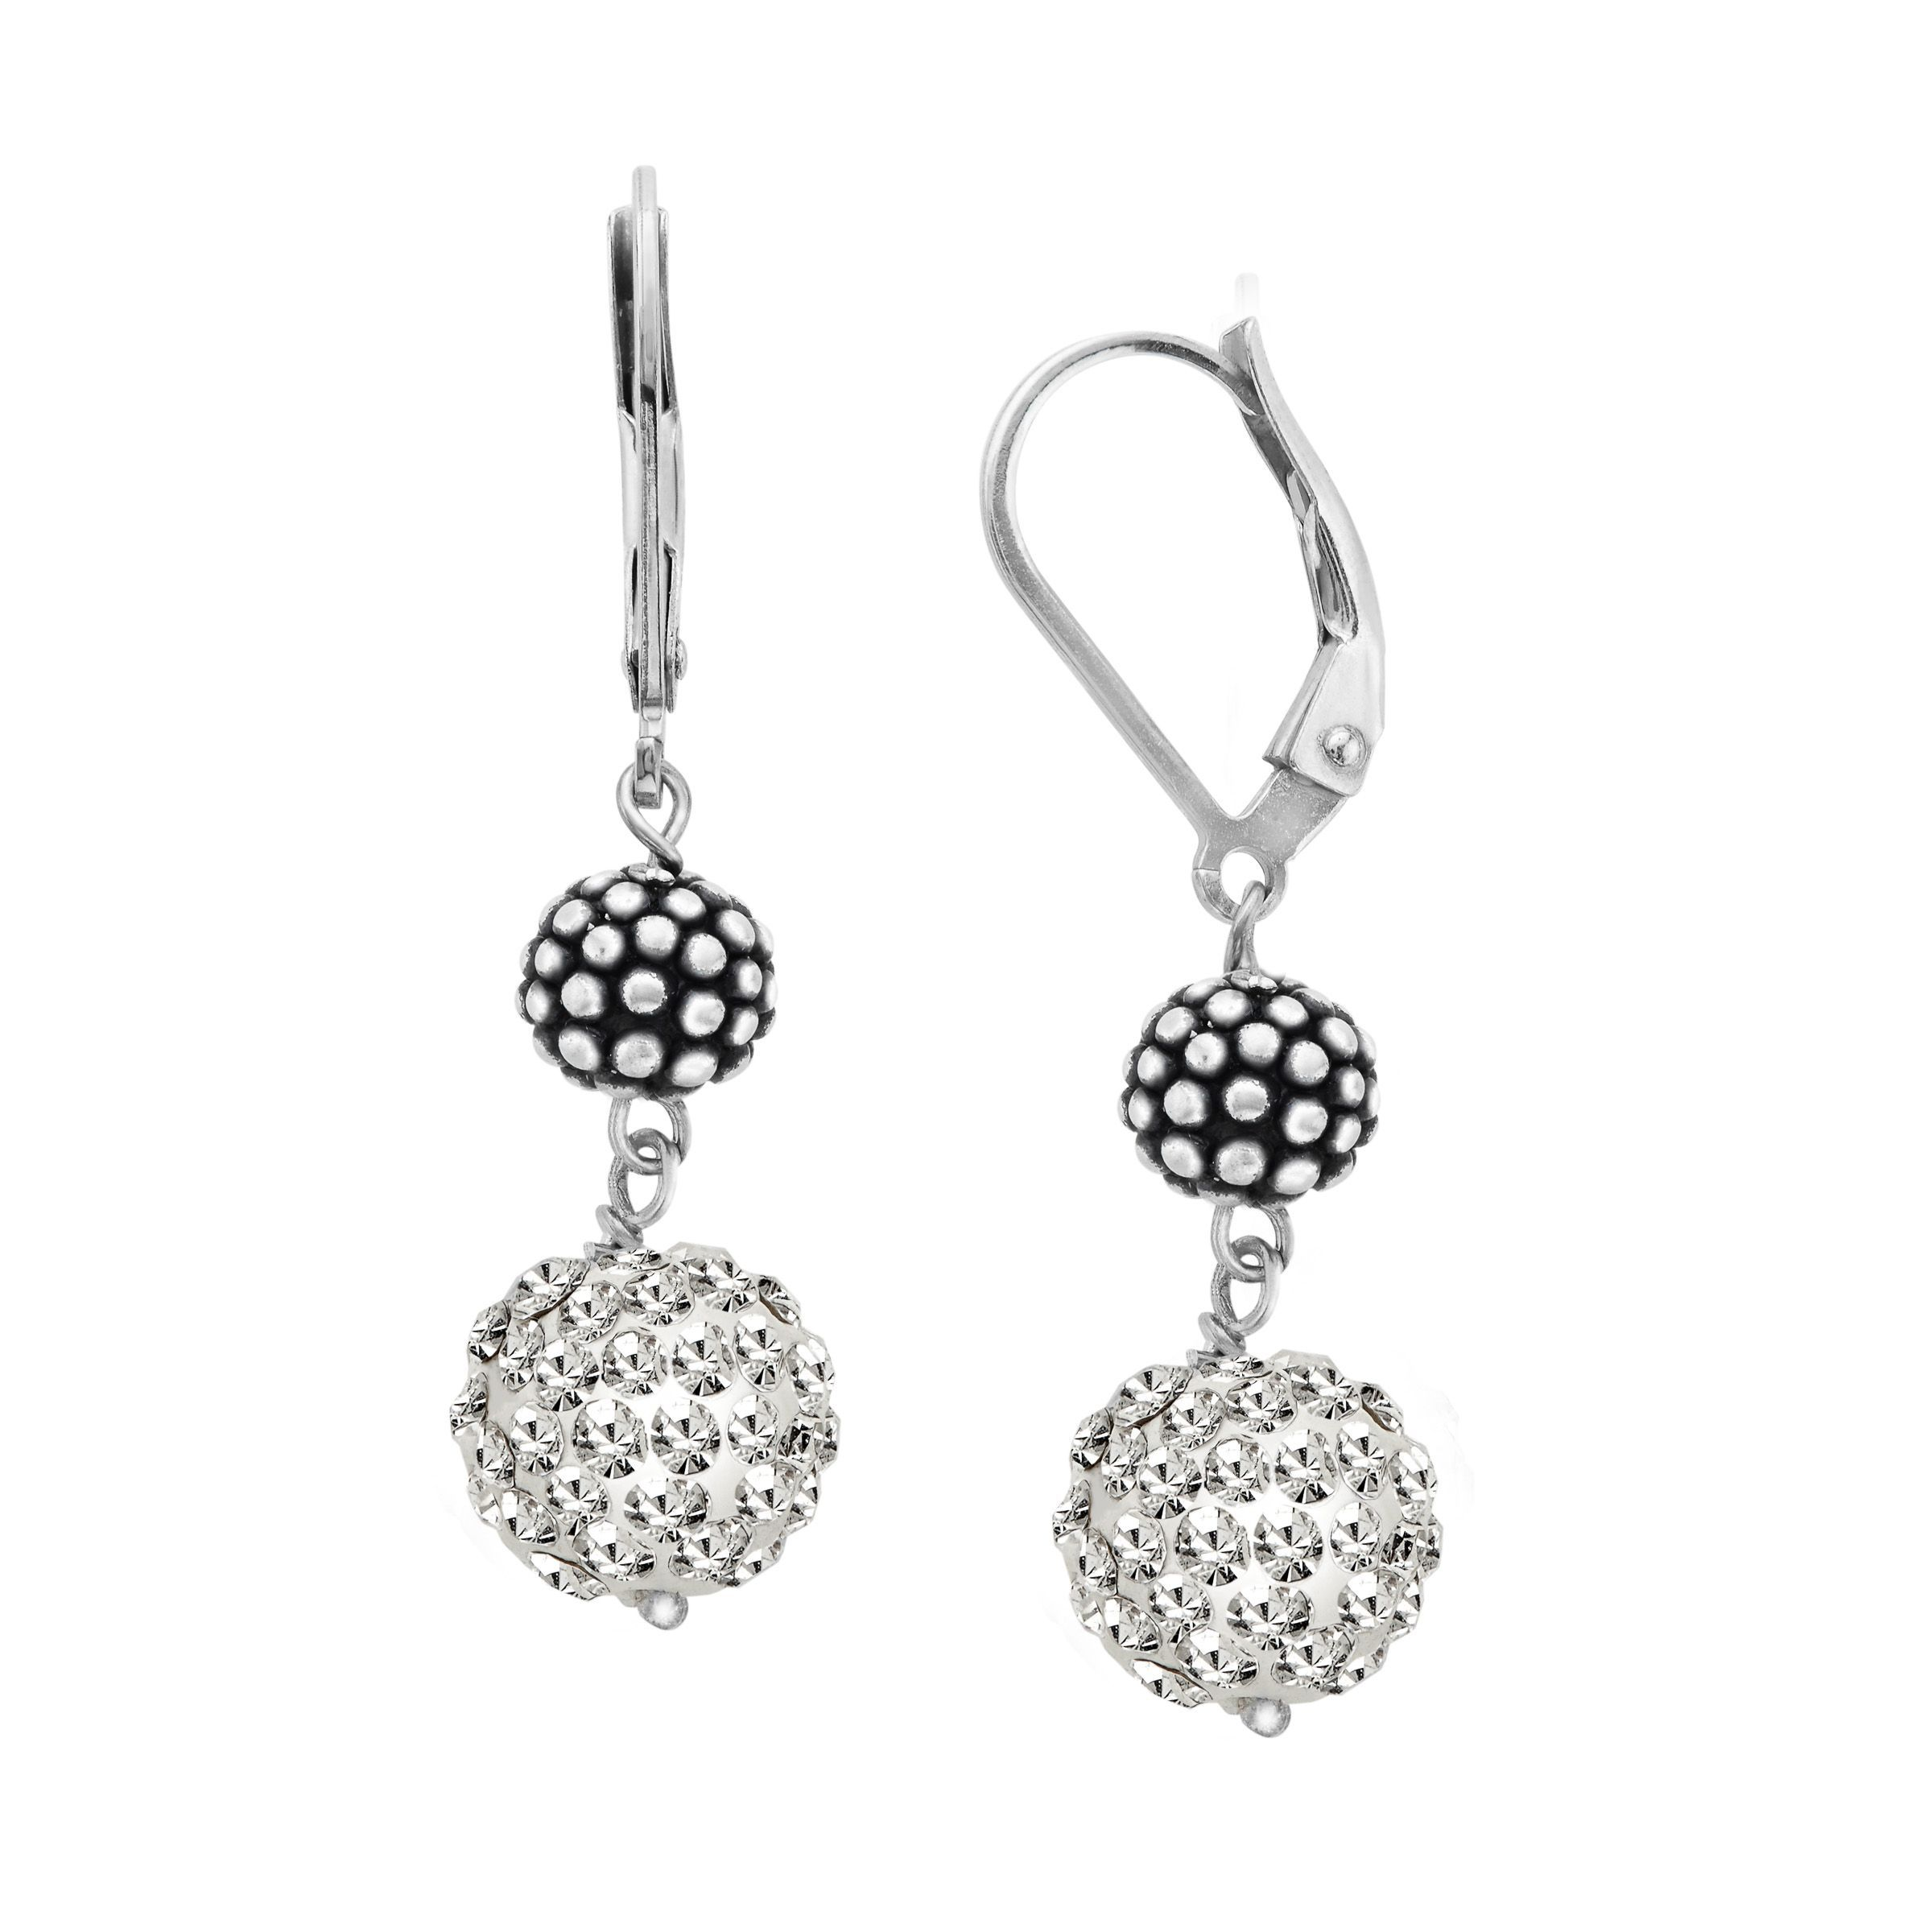 Ball Drop Earrings With Swarovski Crystals Pavé In Sterling Silver